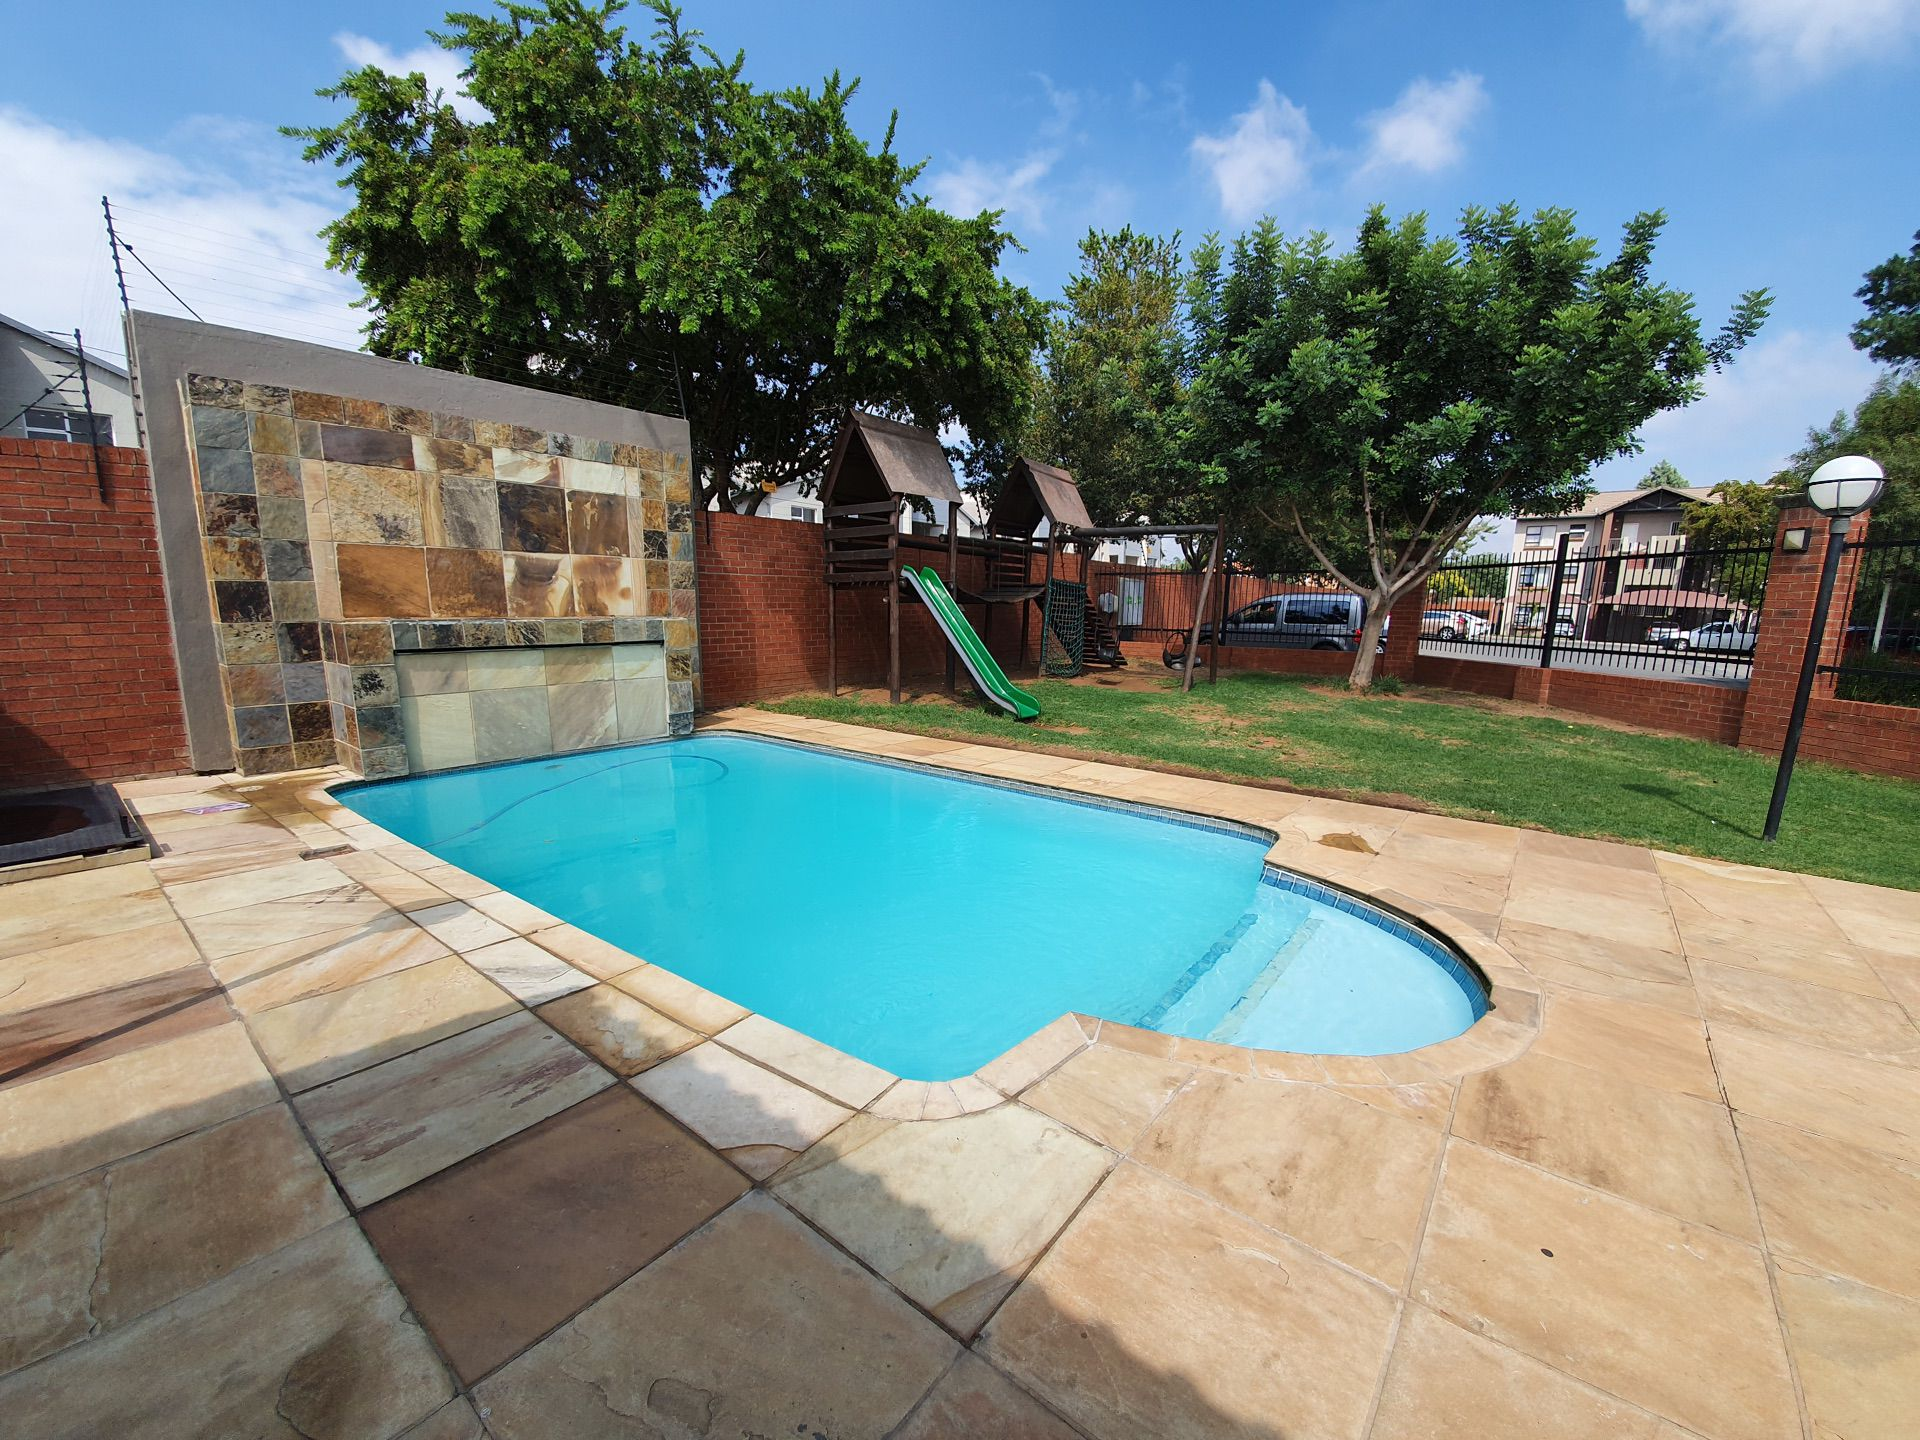 Lovely pool area and spacious garden with play area for kids